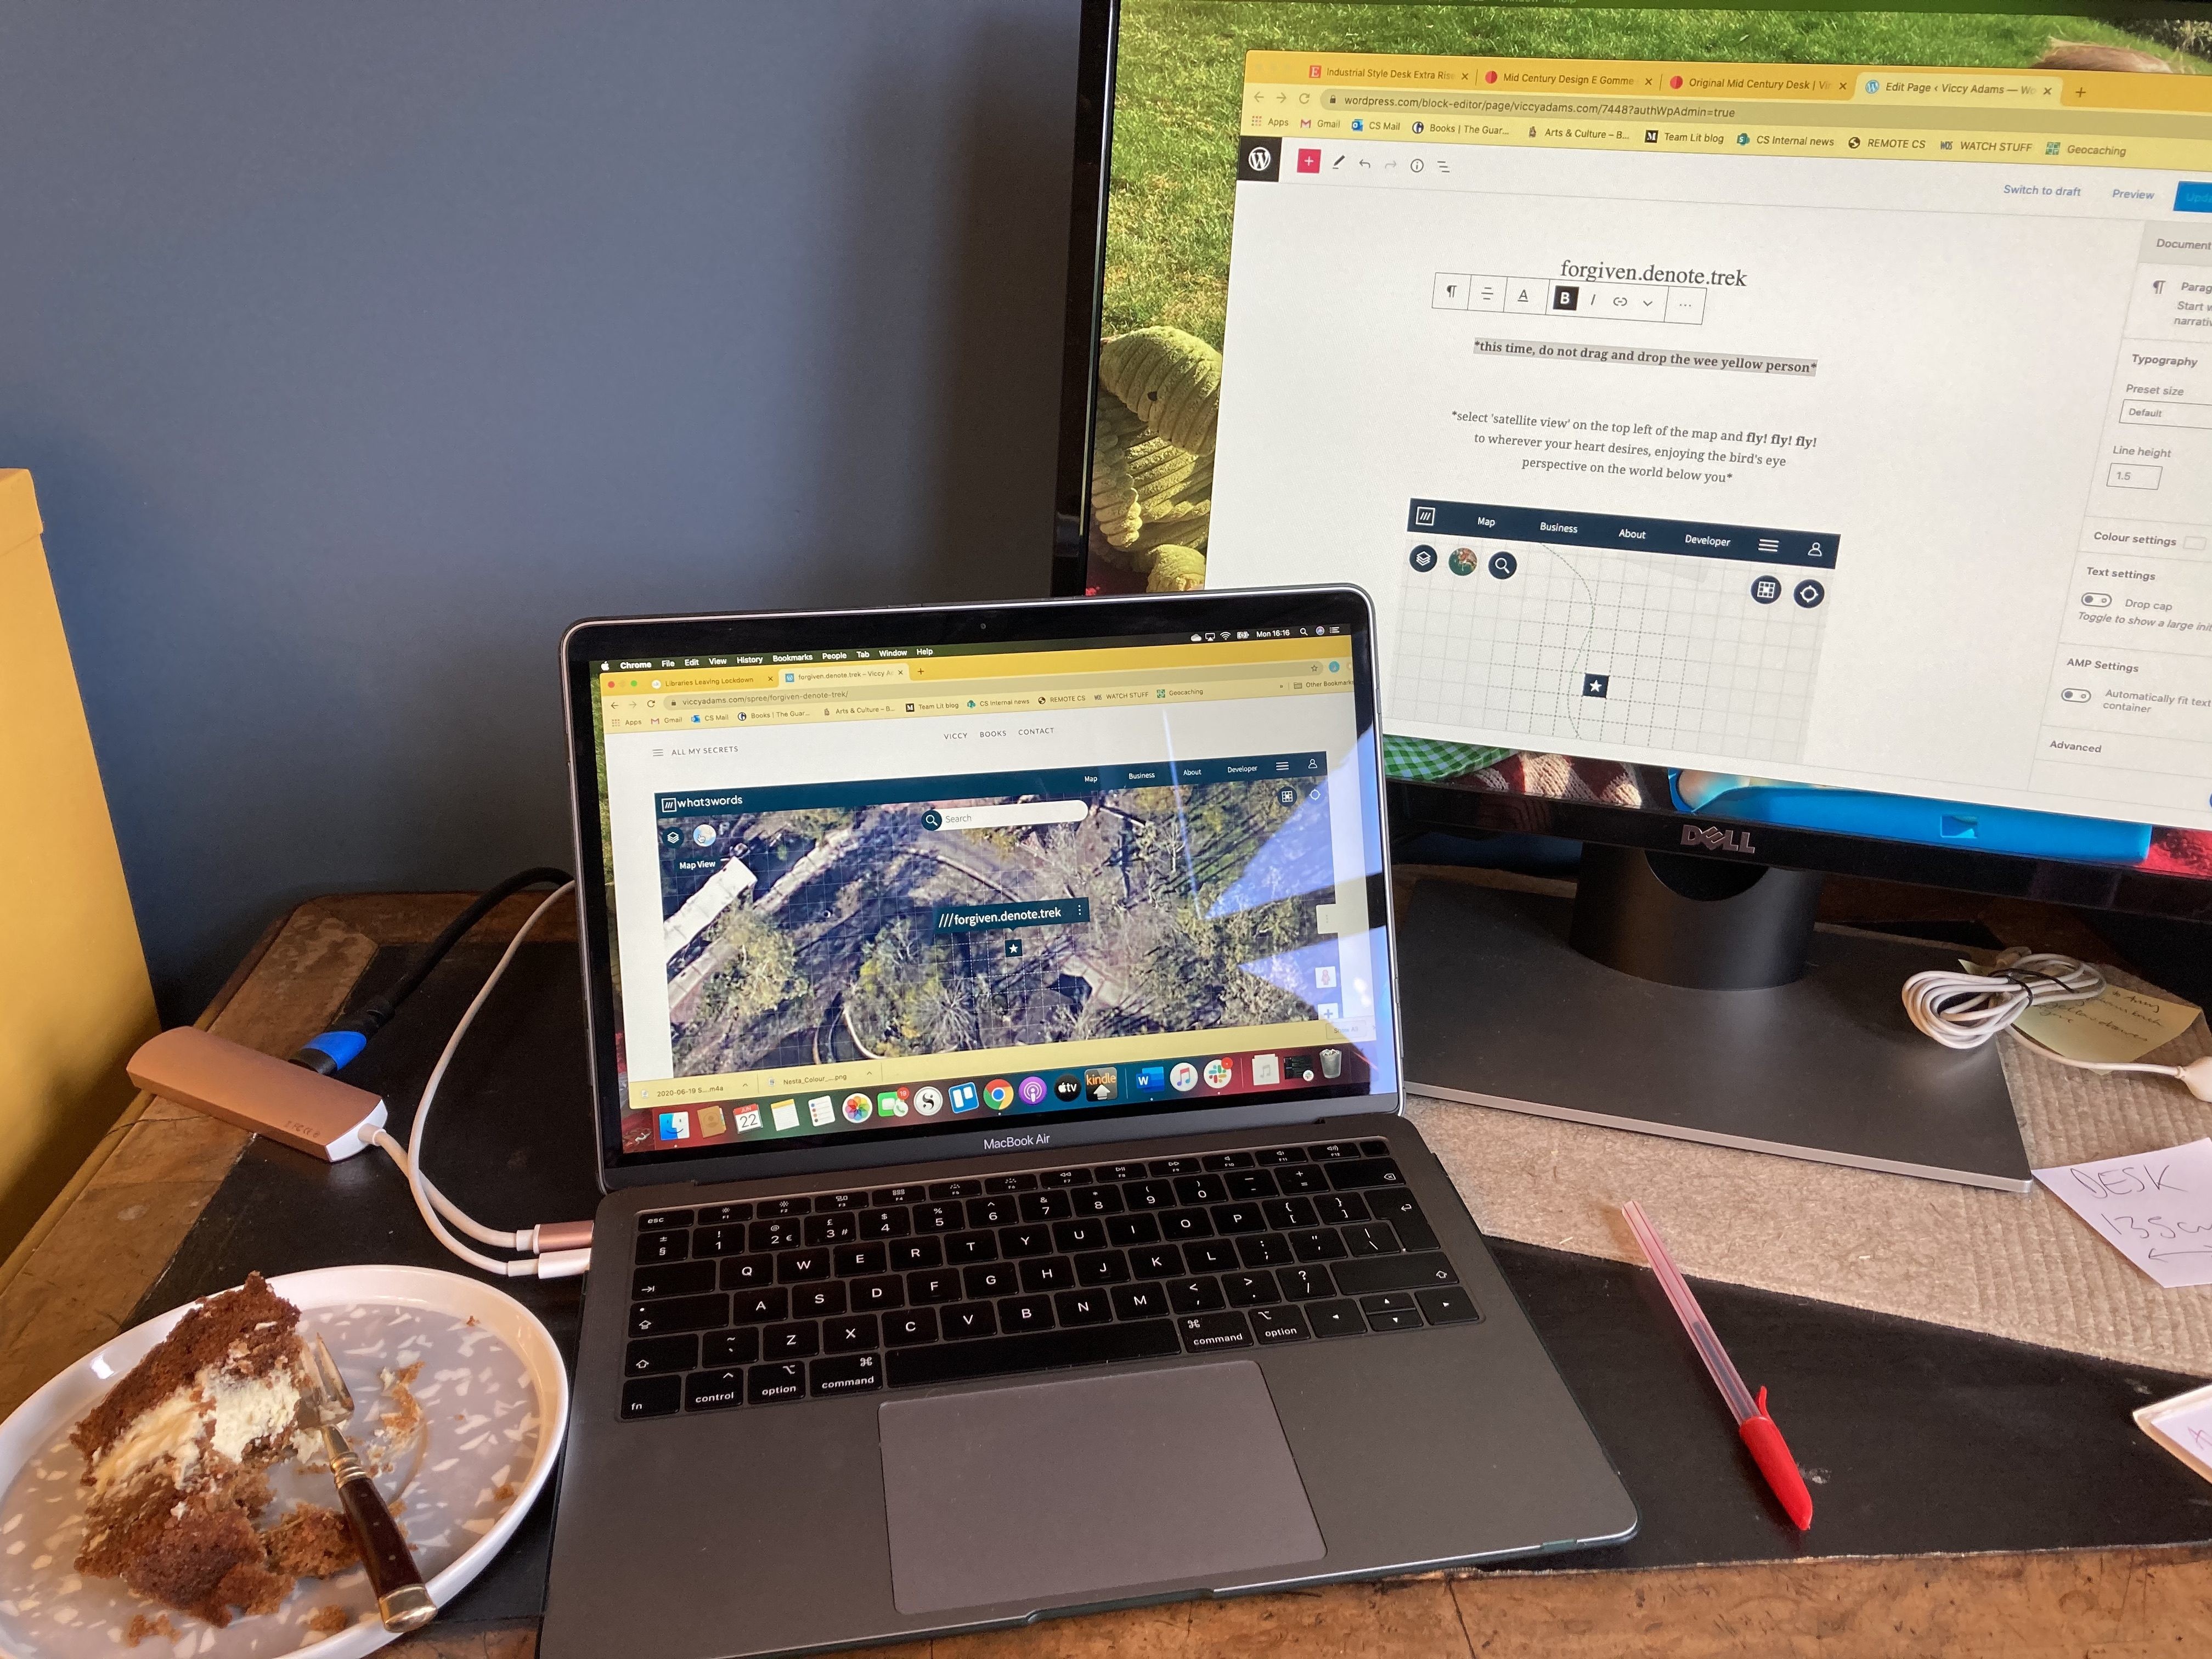 A close up photo of a dark blue room with a small dark wooden desk. In the centre of the deks is a Laptop showing a satellite view map, plugged into a monitor on the right-hand side showing a wordpress page being edited, and a plate of my birthday cake - a carrot cake delivered from an Edinburgh cafe called LoveCrumbs - on the left of the desk.